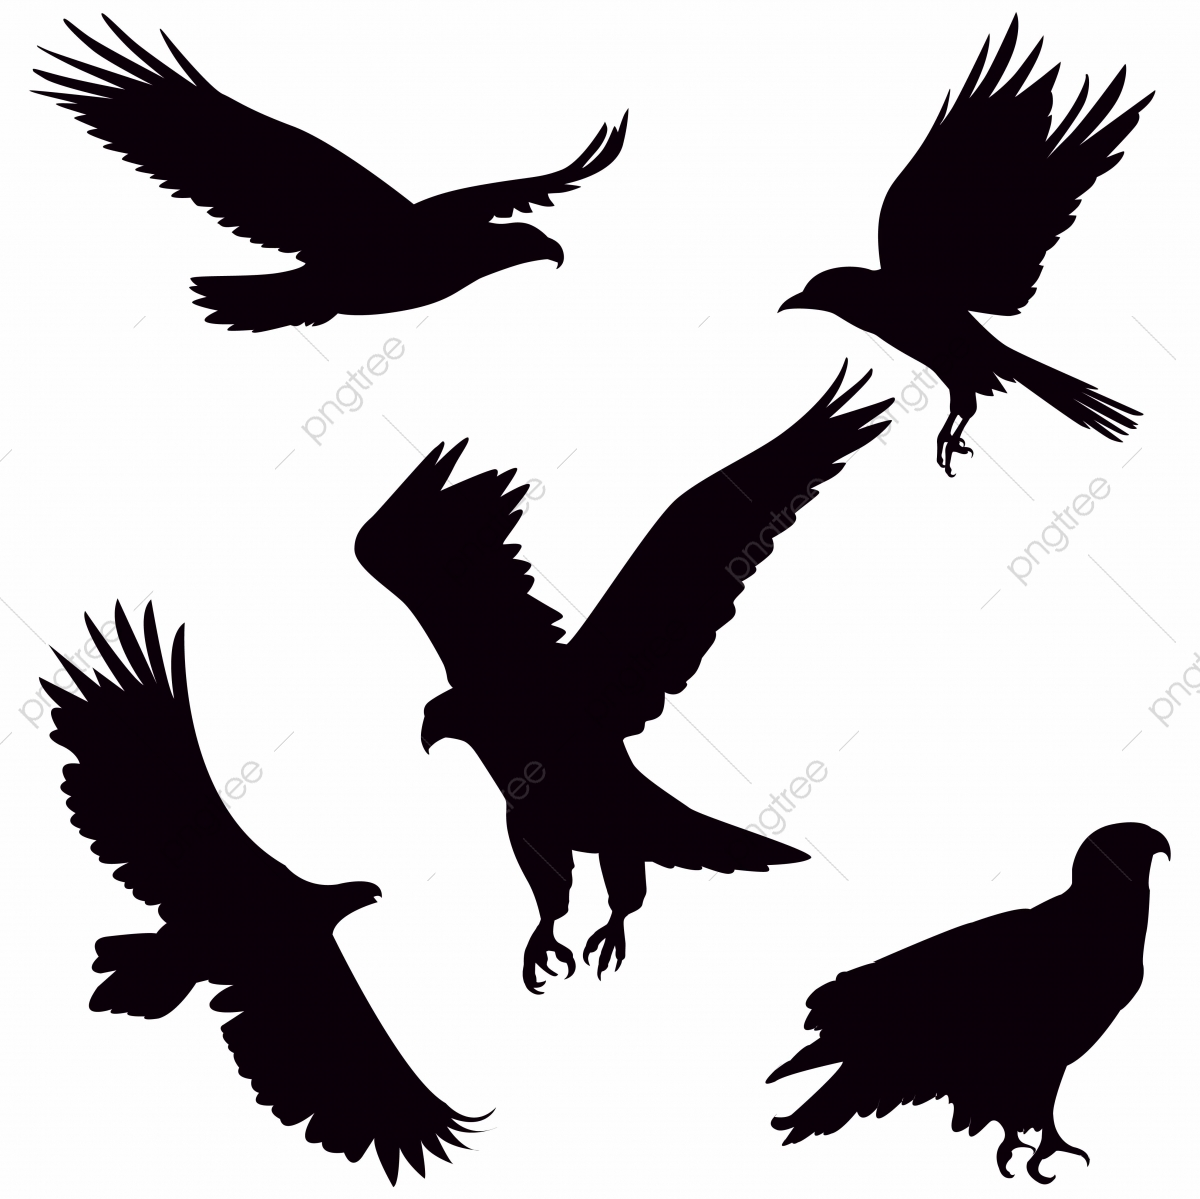 Eagle Silhouette On White Background Isolated Freedom Animal Png And Vector With Transparent Background For Free Download Eagle silhouette 001 stock vector. https pngtree com freepng eagle silhouette on white background 4150285 html